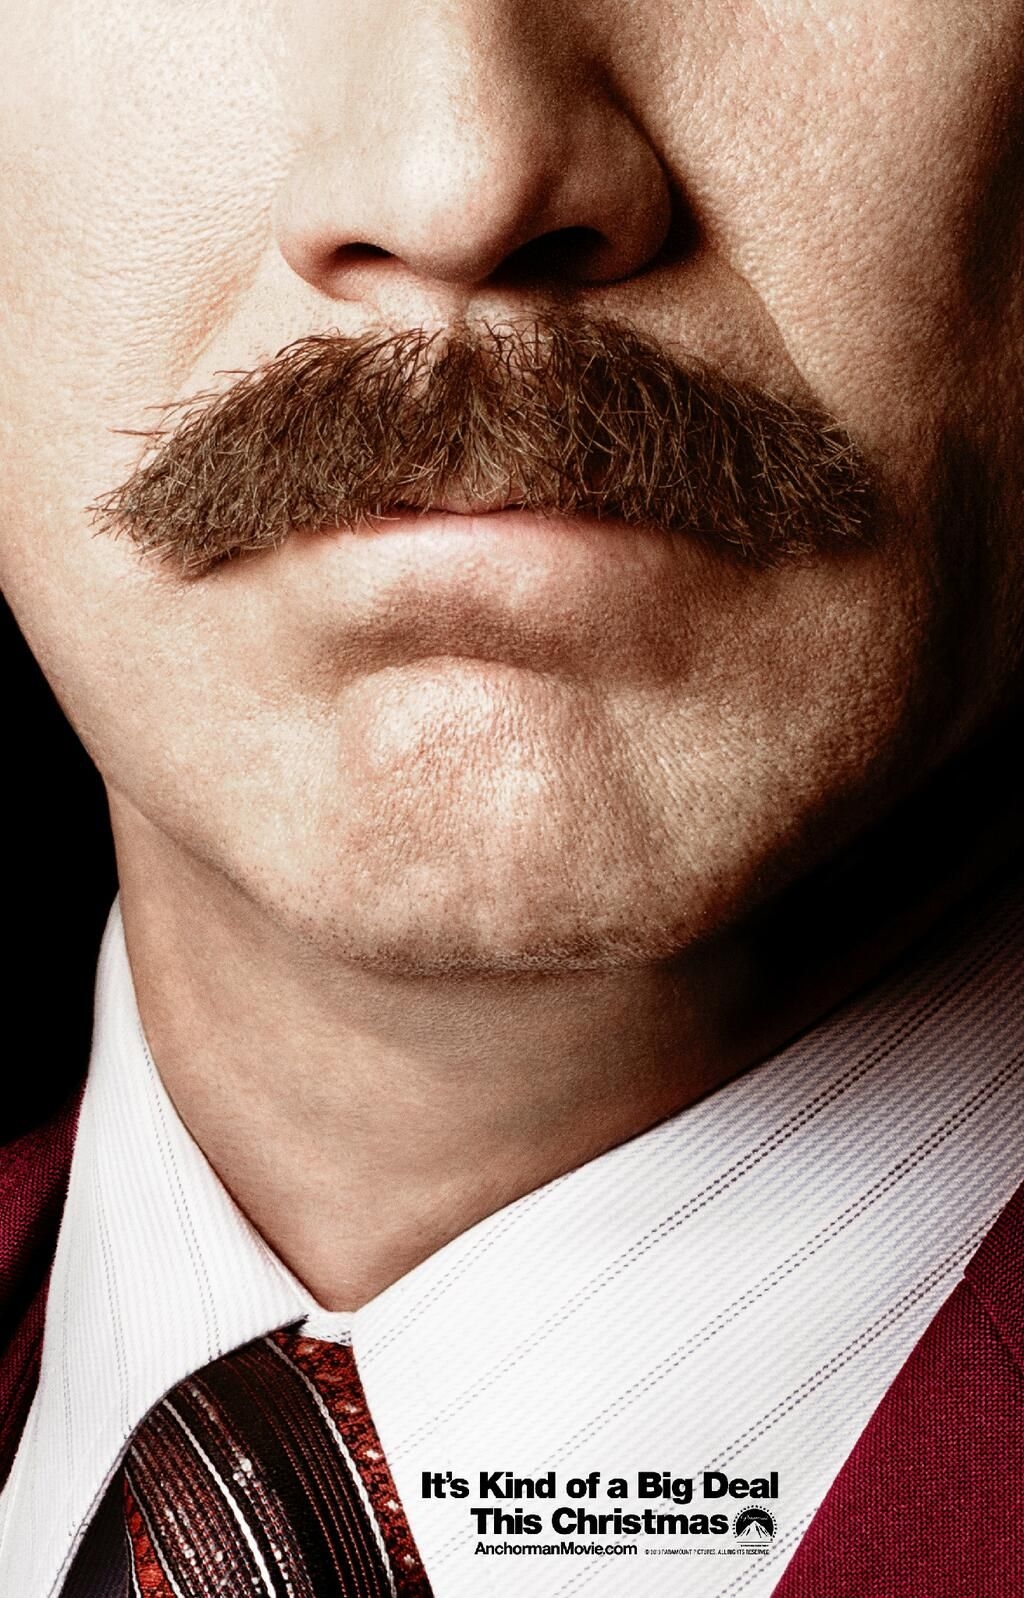 By Ron Burgundy S Mustache It S A New Anchorman Poster